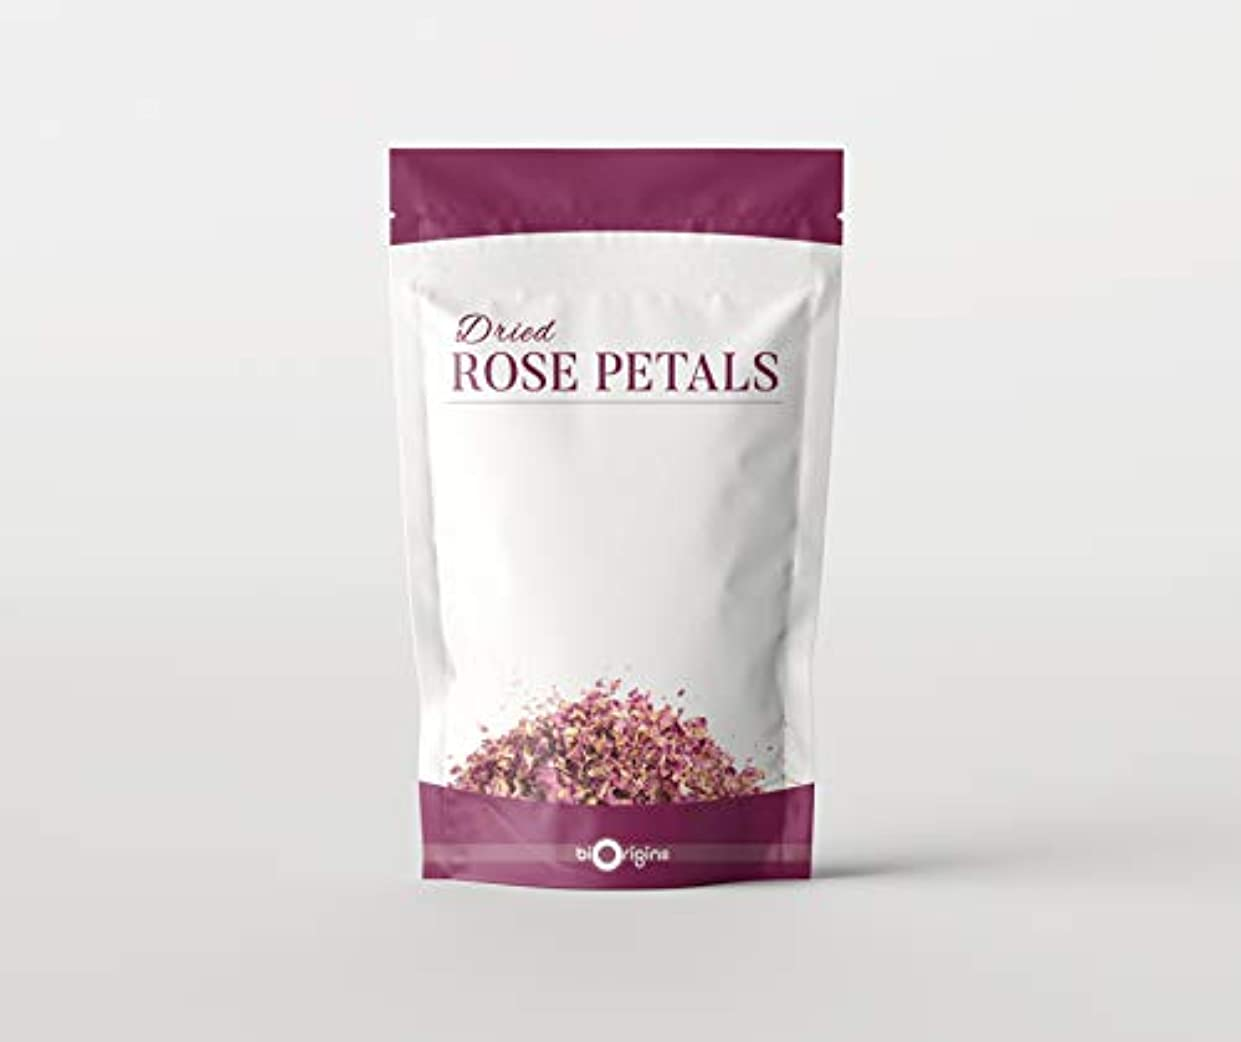 Dried Rose Petals - 100g